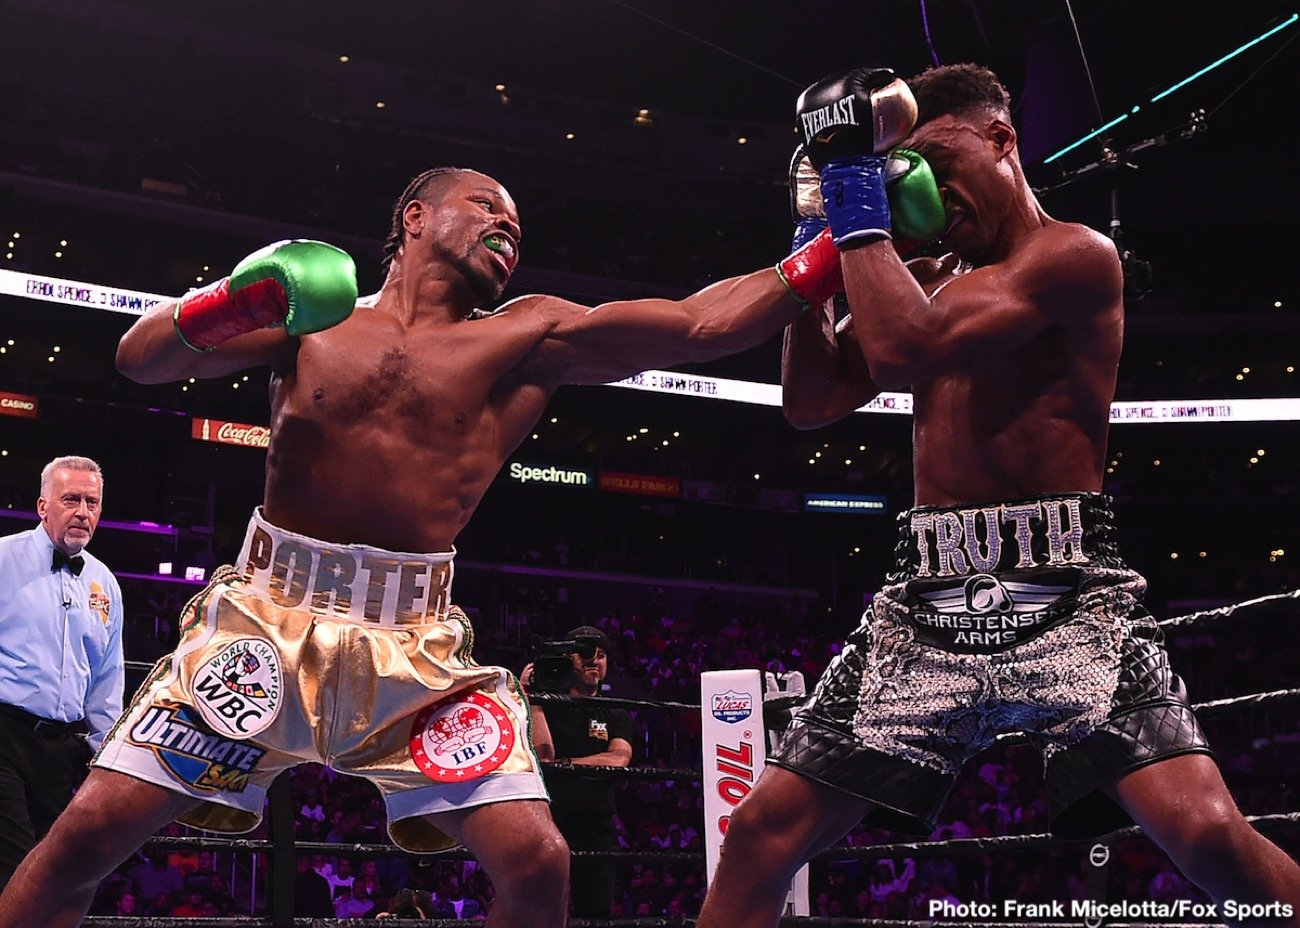 IBF welterweight champion Errol 'The Truth' Spence Jr (26-0, 21 KOs) was forced to fight tooth and nail to defeat WBC champion 'Showtime' Shawn Porter (30-3-1, 17 KOs) by a 12 round split decision on Saturday night in a war at the Staples Center in Los Angeles, California.